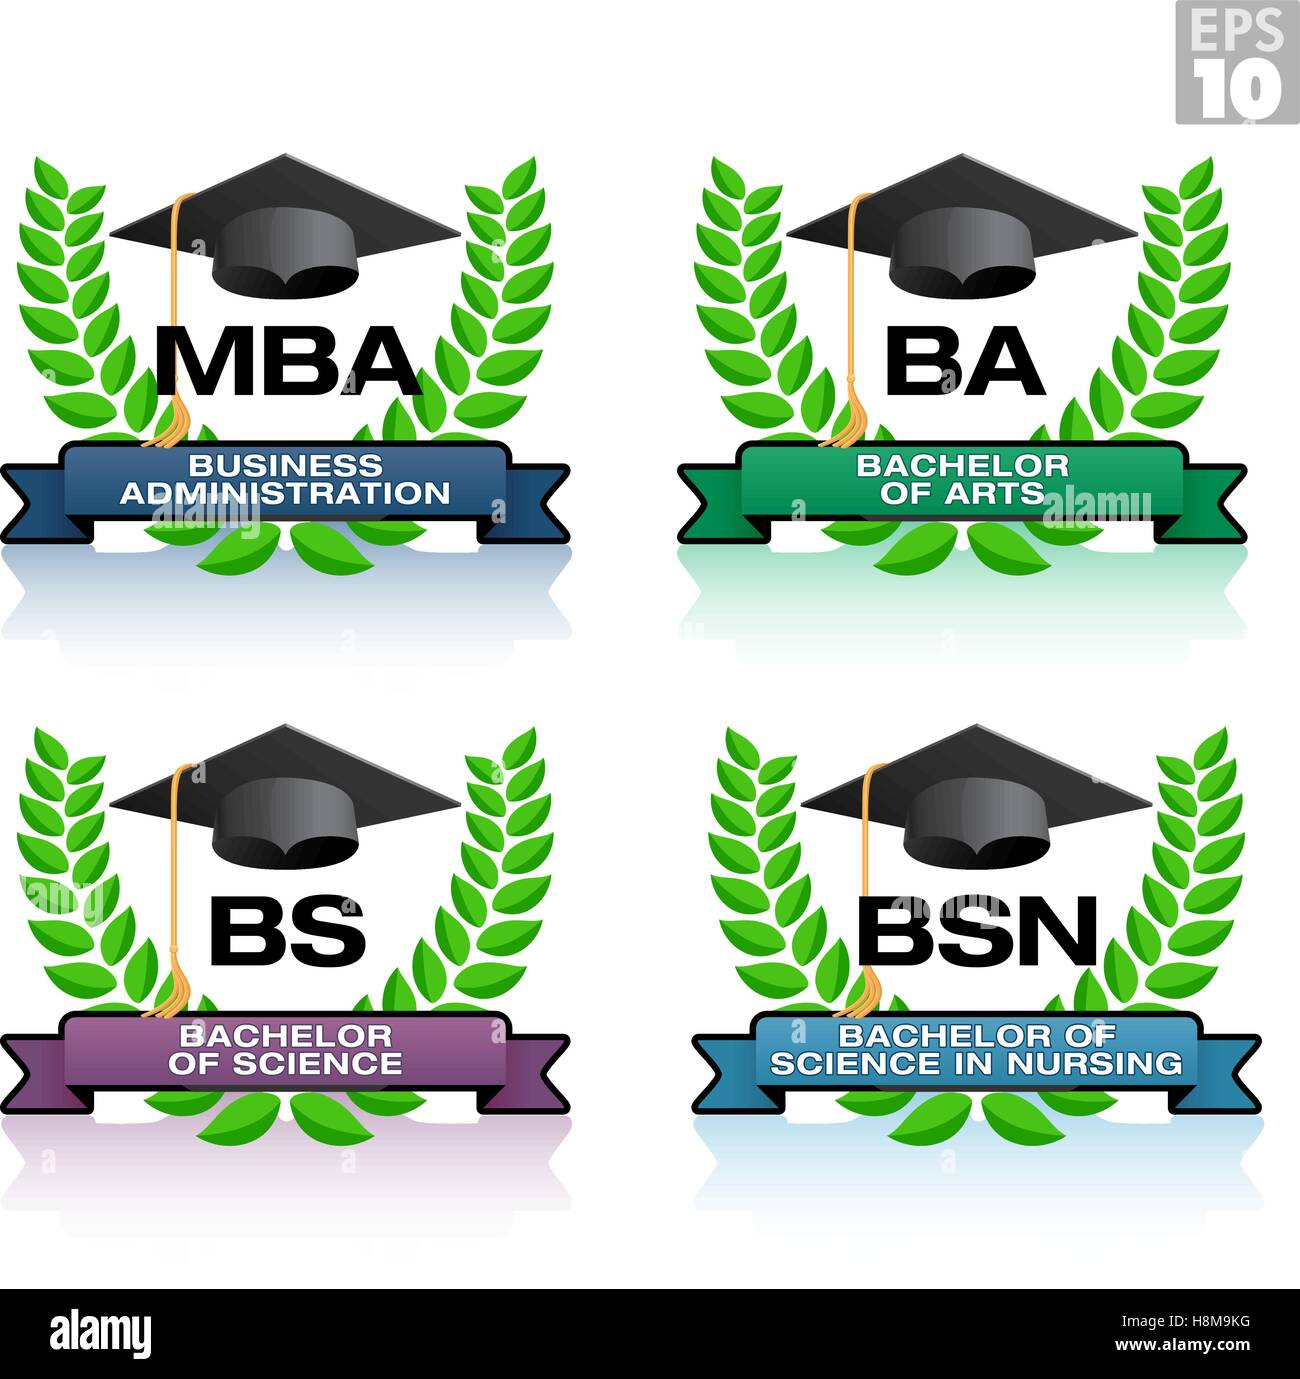 Degrees in education with wreath and graduation hat, including MBA, BA, BS, BSN - Stock Image